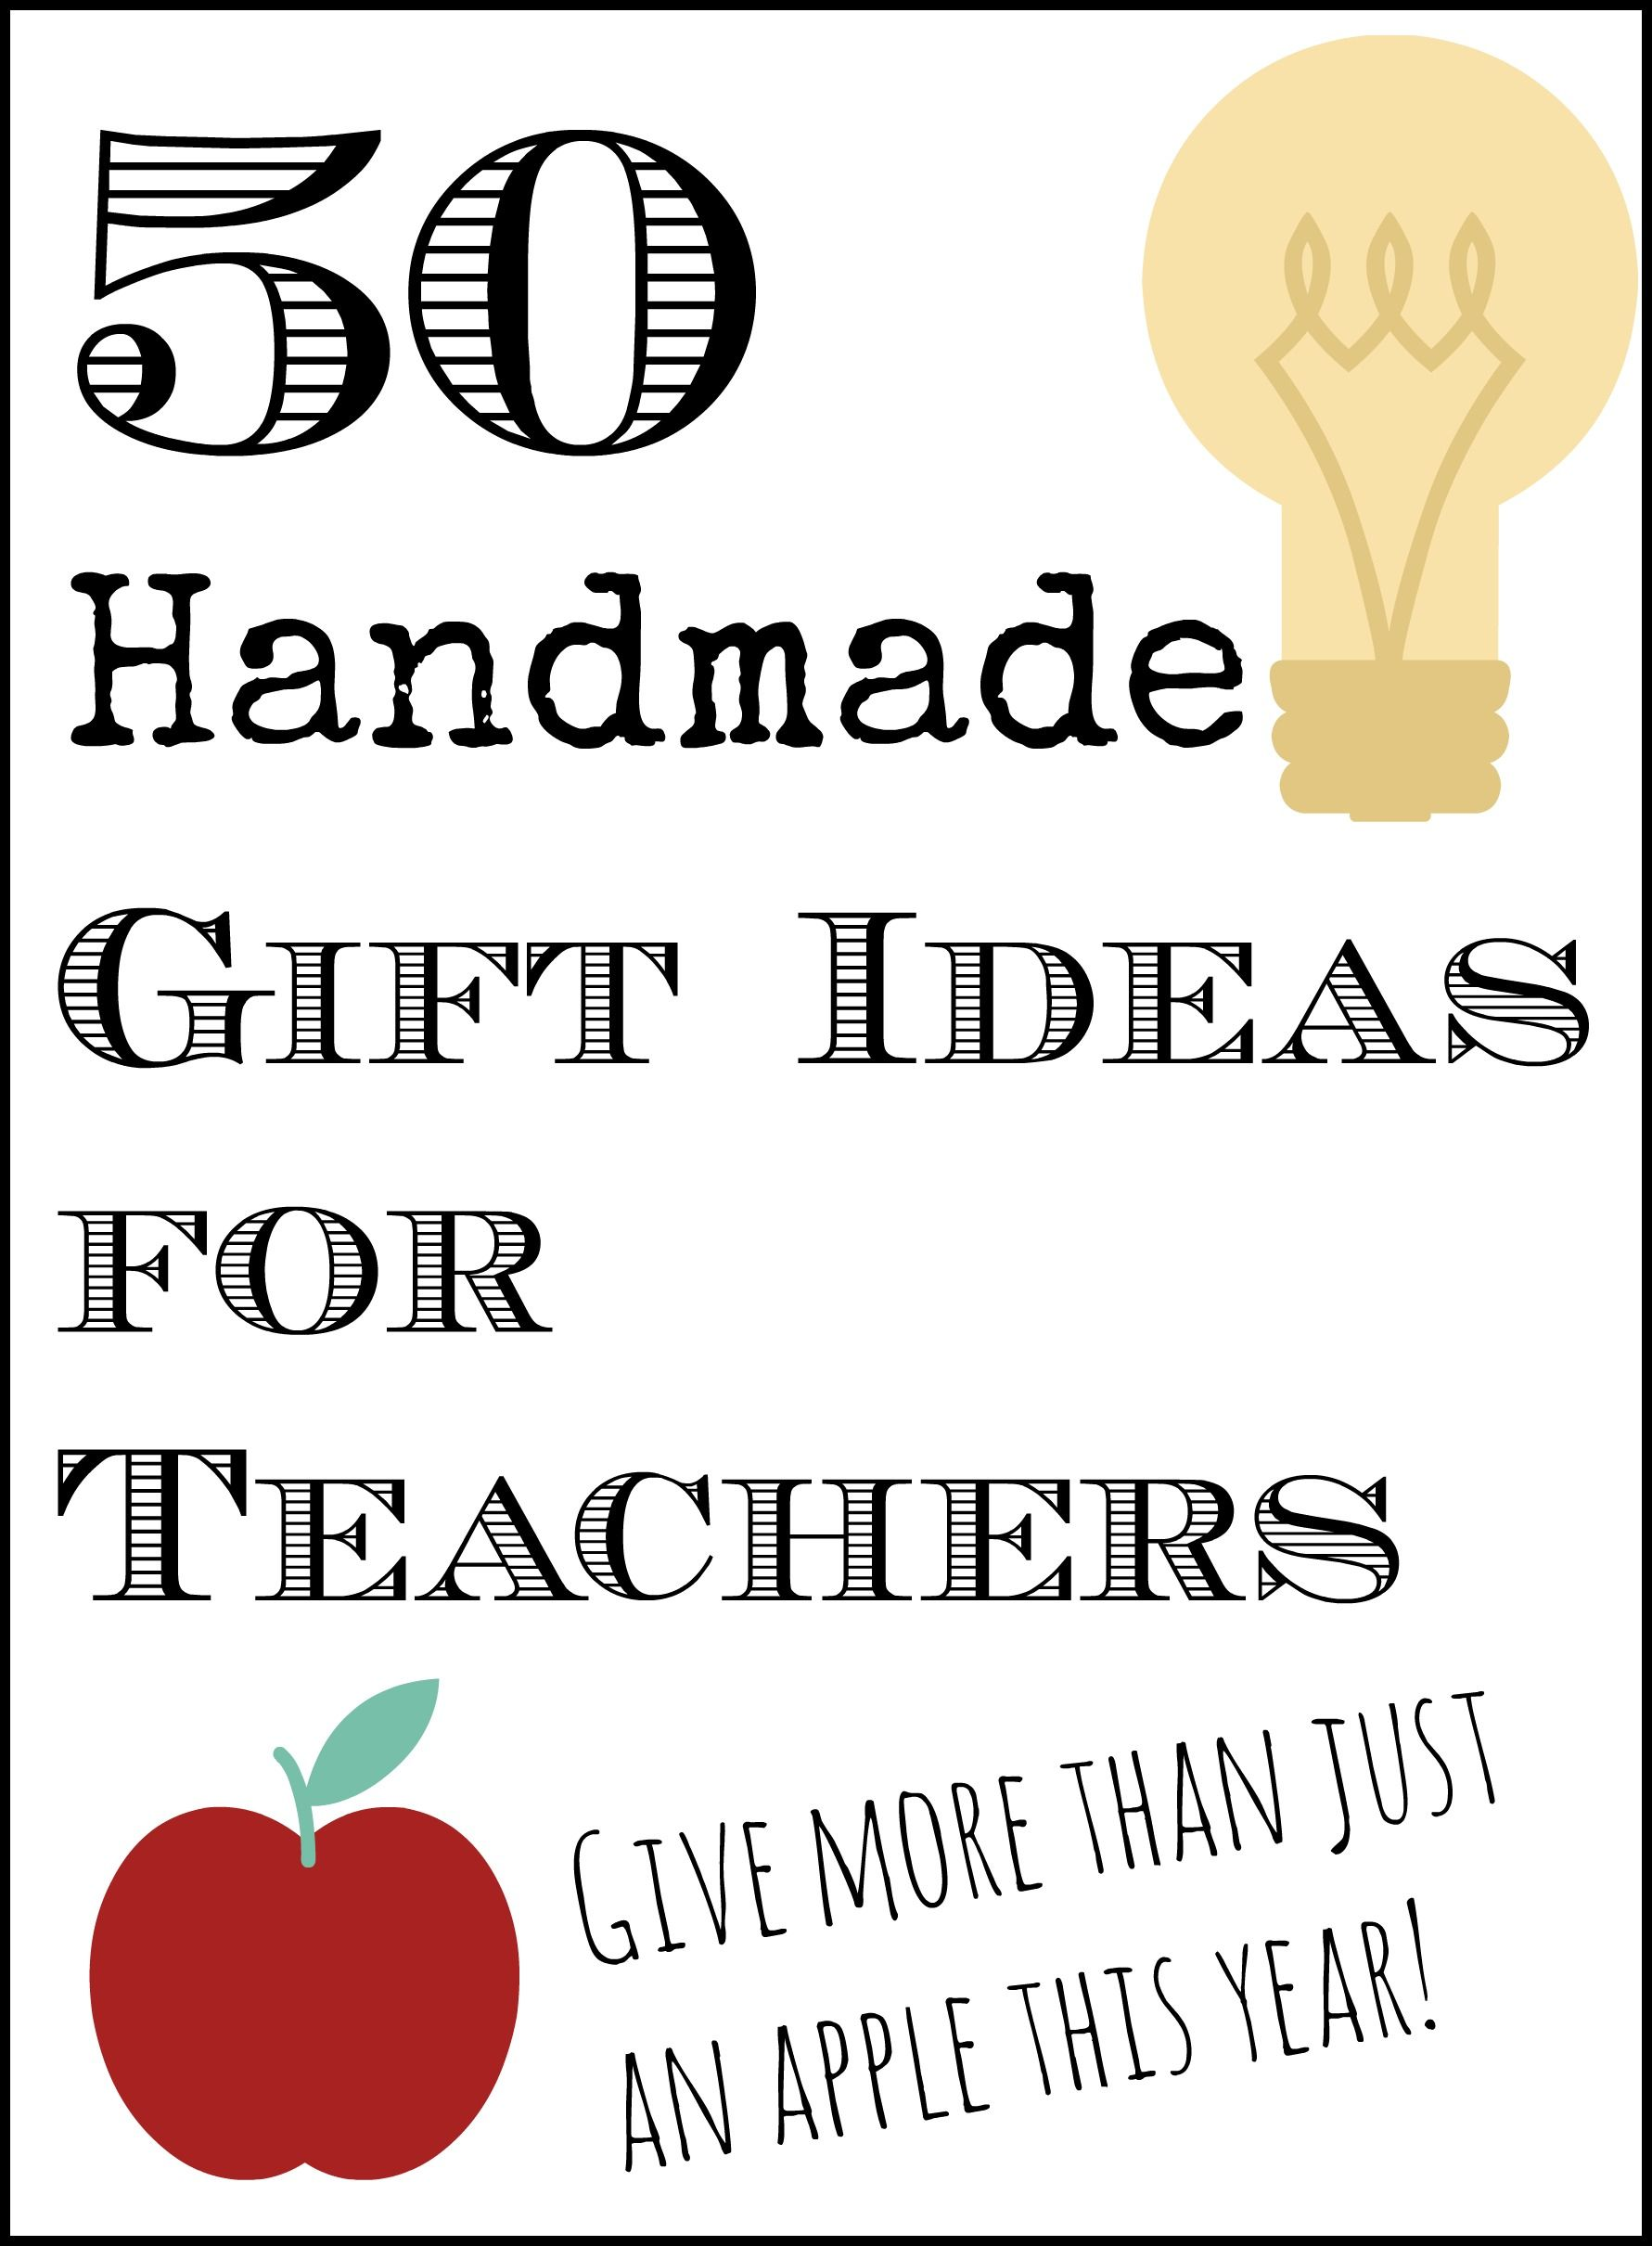 50 handmade gift ideas for teachers ortografa hechos y la nia get 50 handmade gift ideas for teachers here with pictures so you can click to solutioingenieria Choice Image